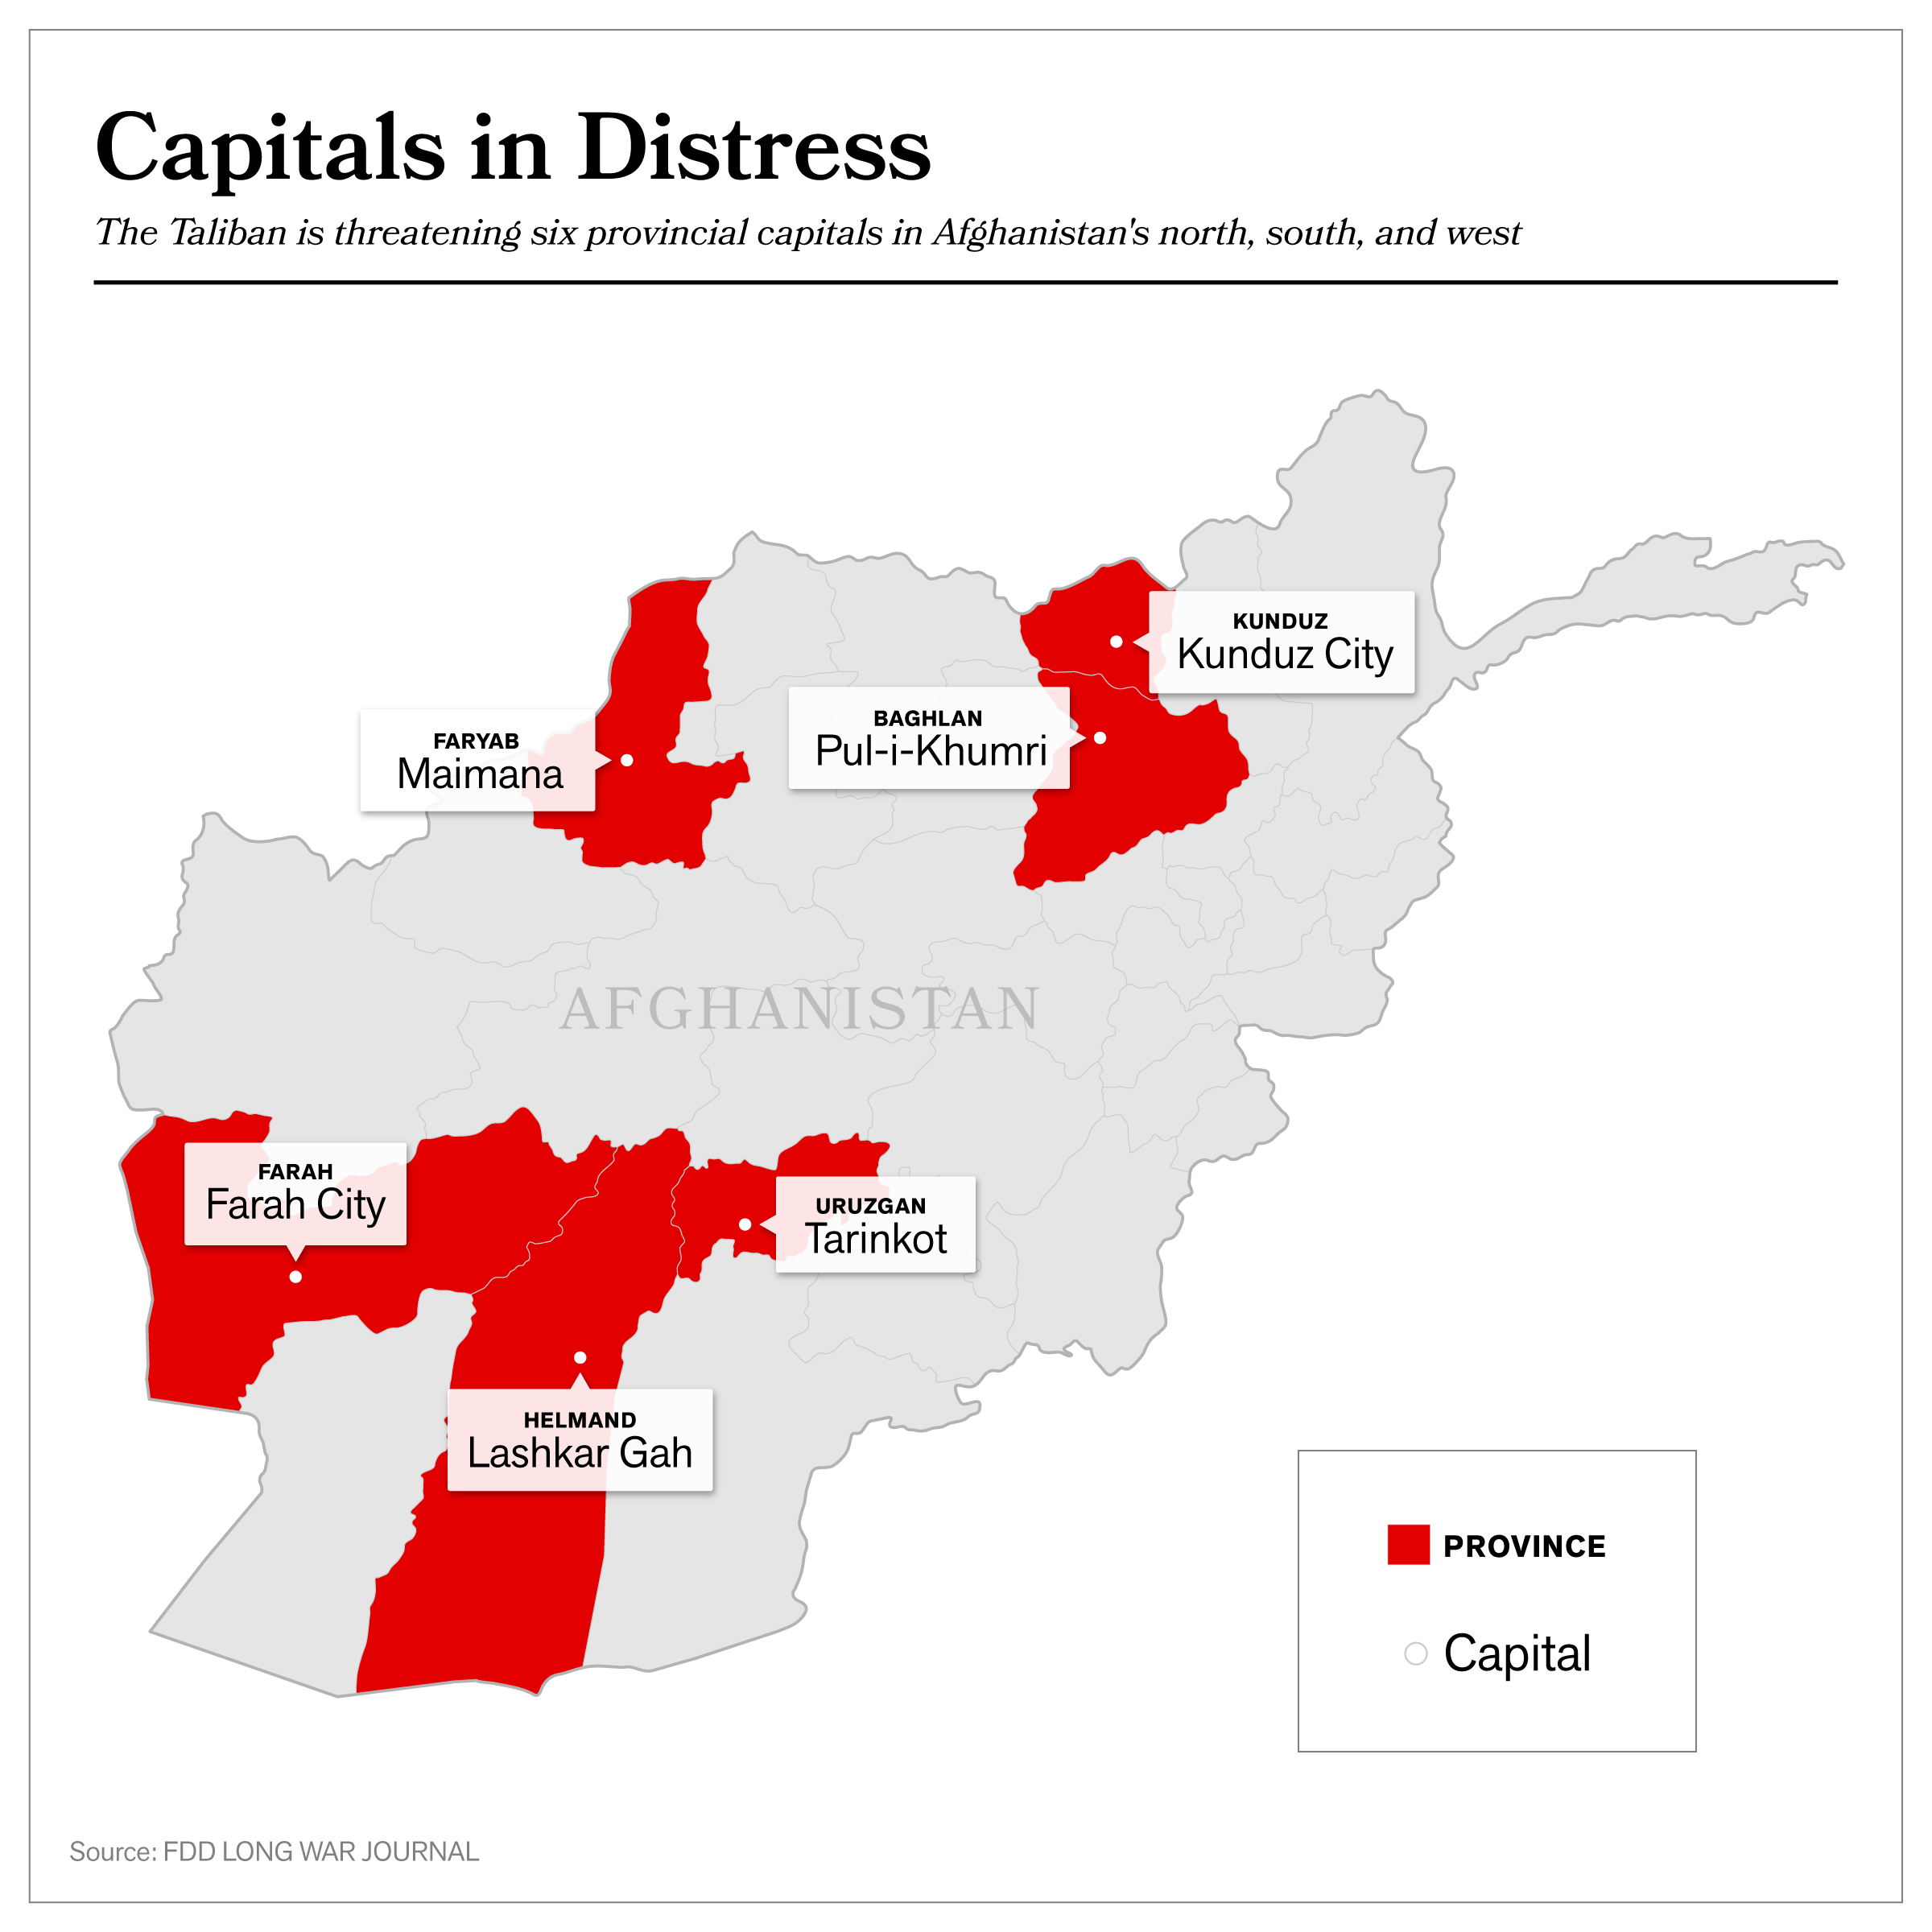 afghanistanmap_capitalsindistress_102016_03